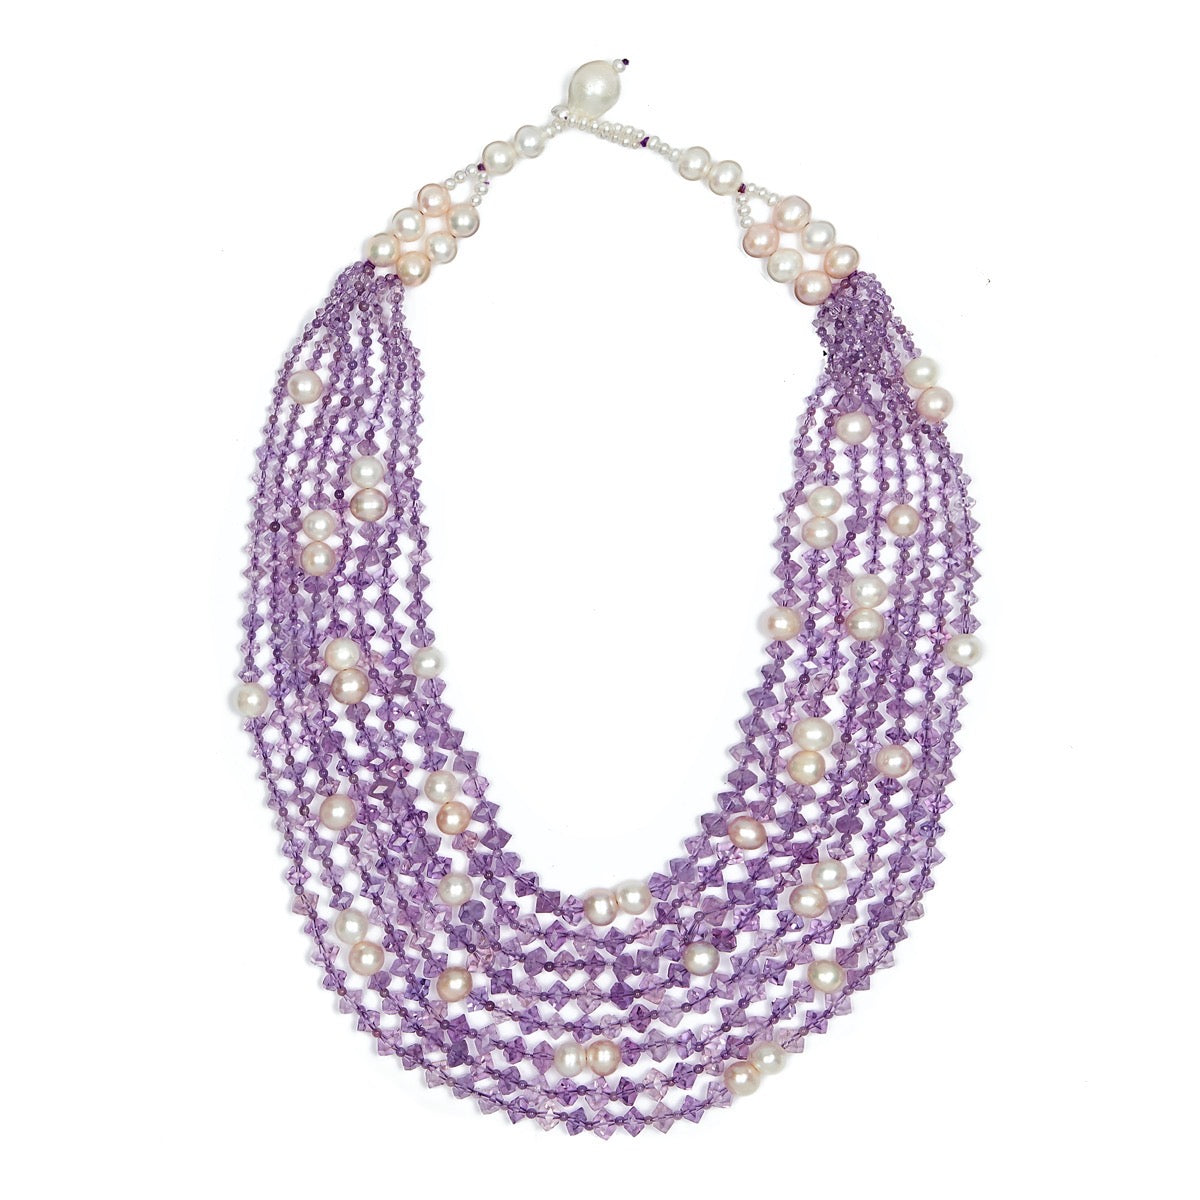 8 Strand Amethyst Pearl Grace Necklace